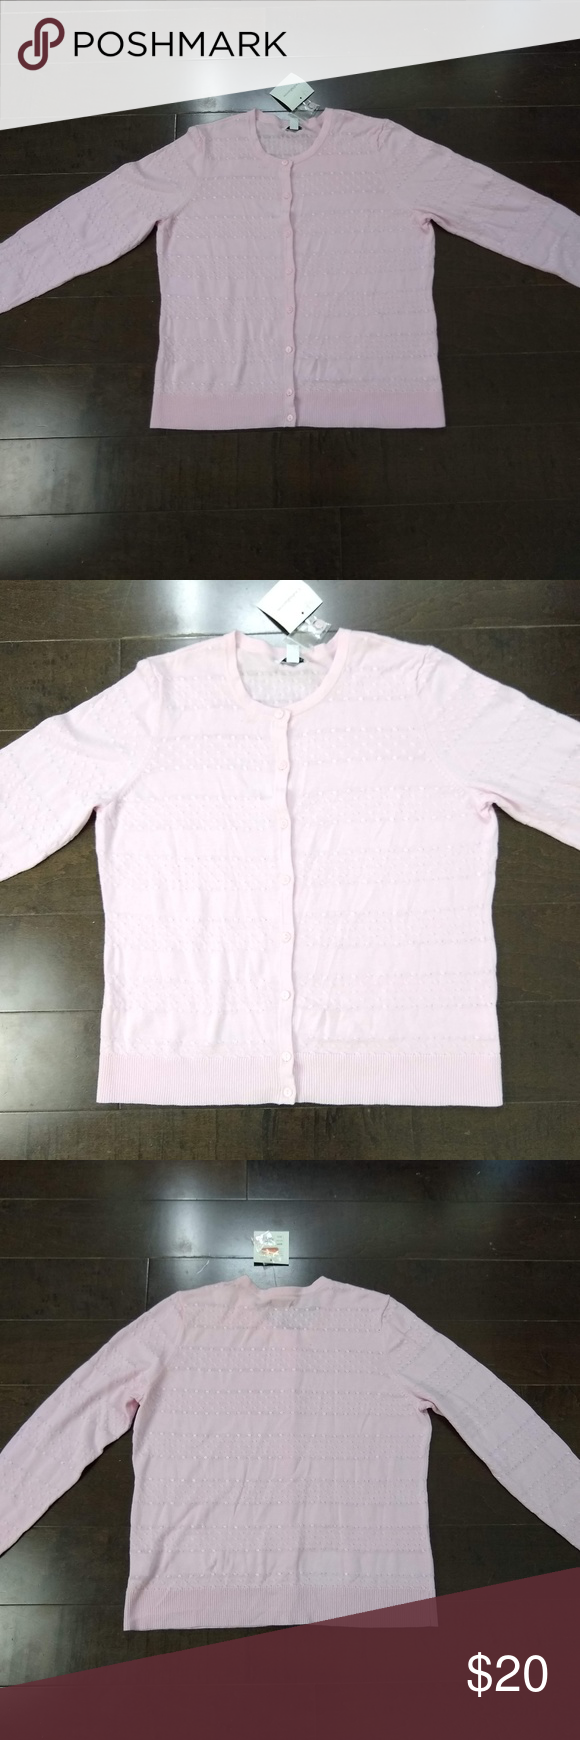 Croft & Barrow Pink Pointelle Button Cardigan L Condition: New with flaws. Small stain by the neckline.   Button-down lightweight pointelle knit cardigan sweater in